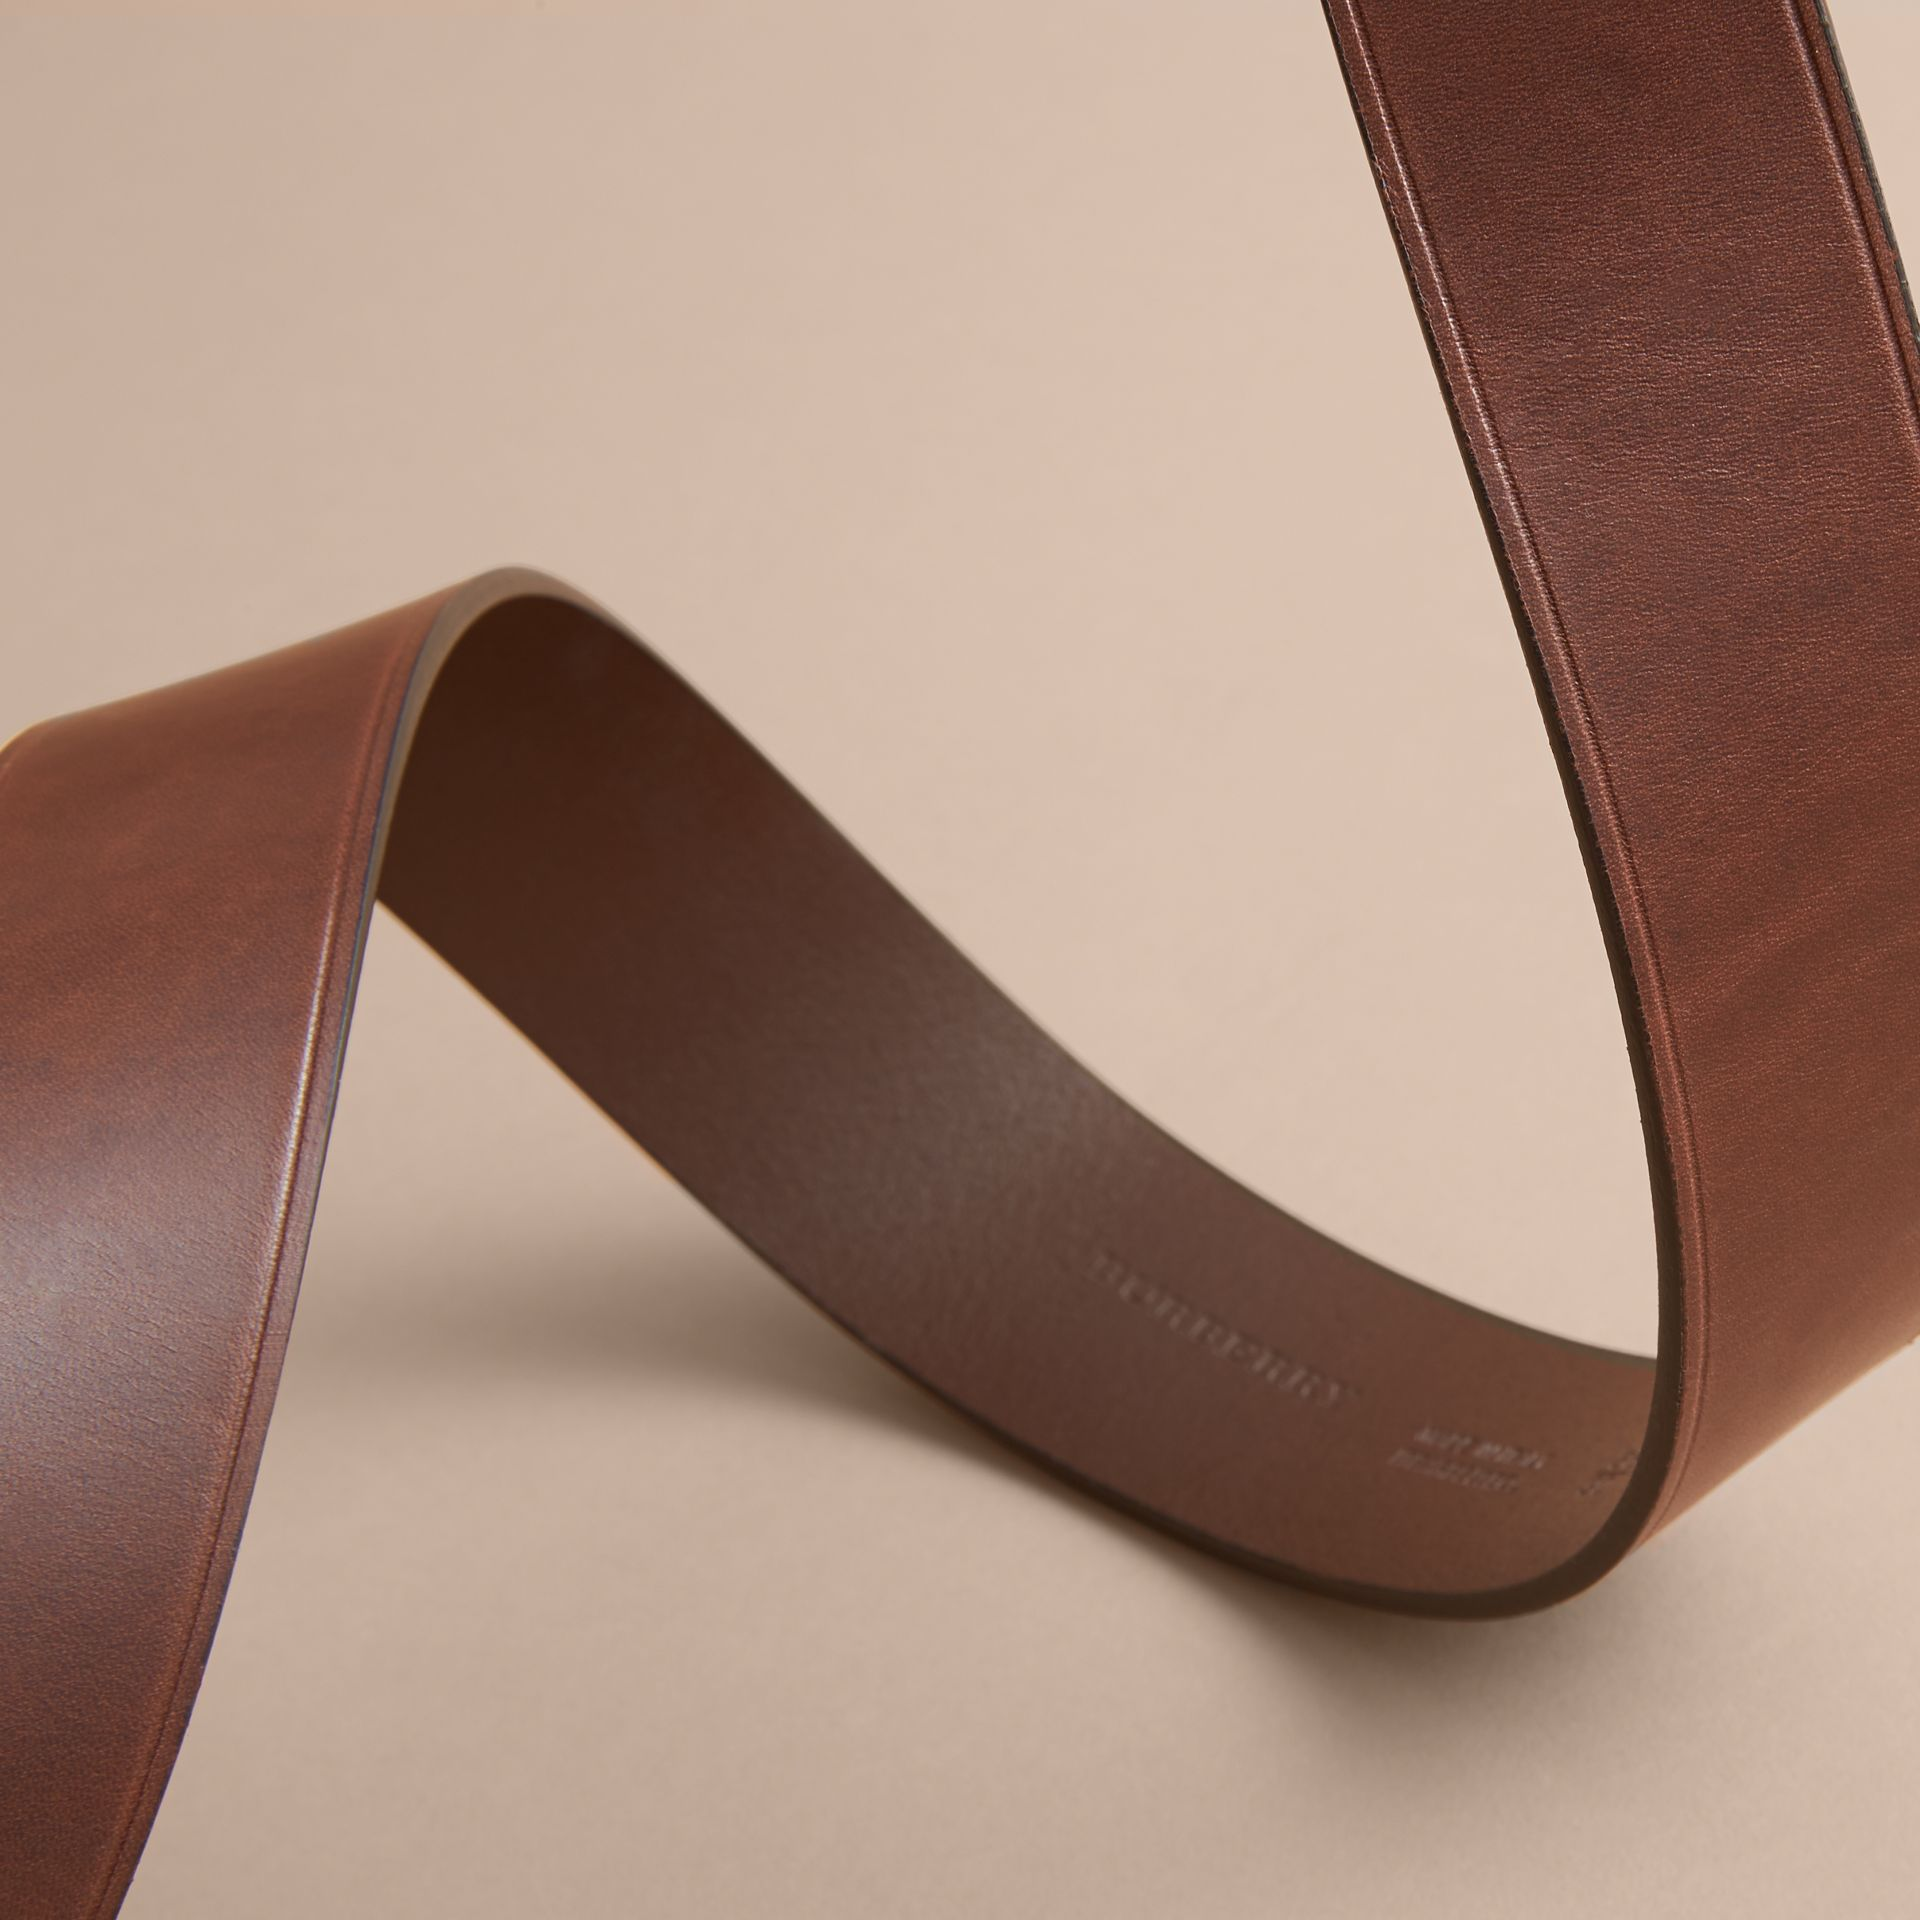 Brass Buckle Leather Belt in Auburn - Men | Burberry - gallery image 3